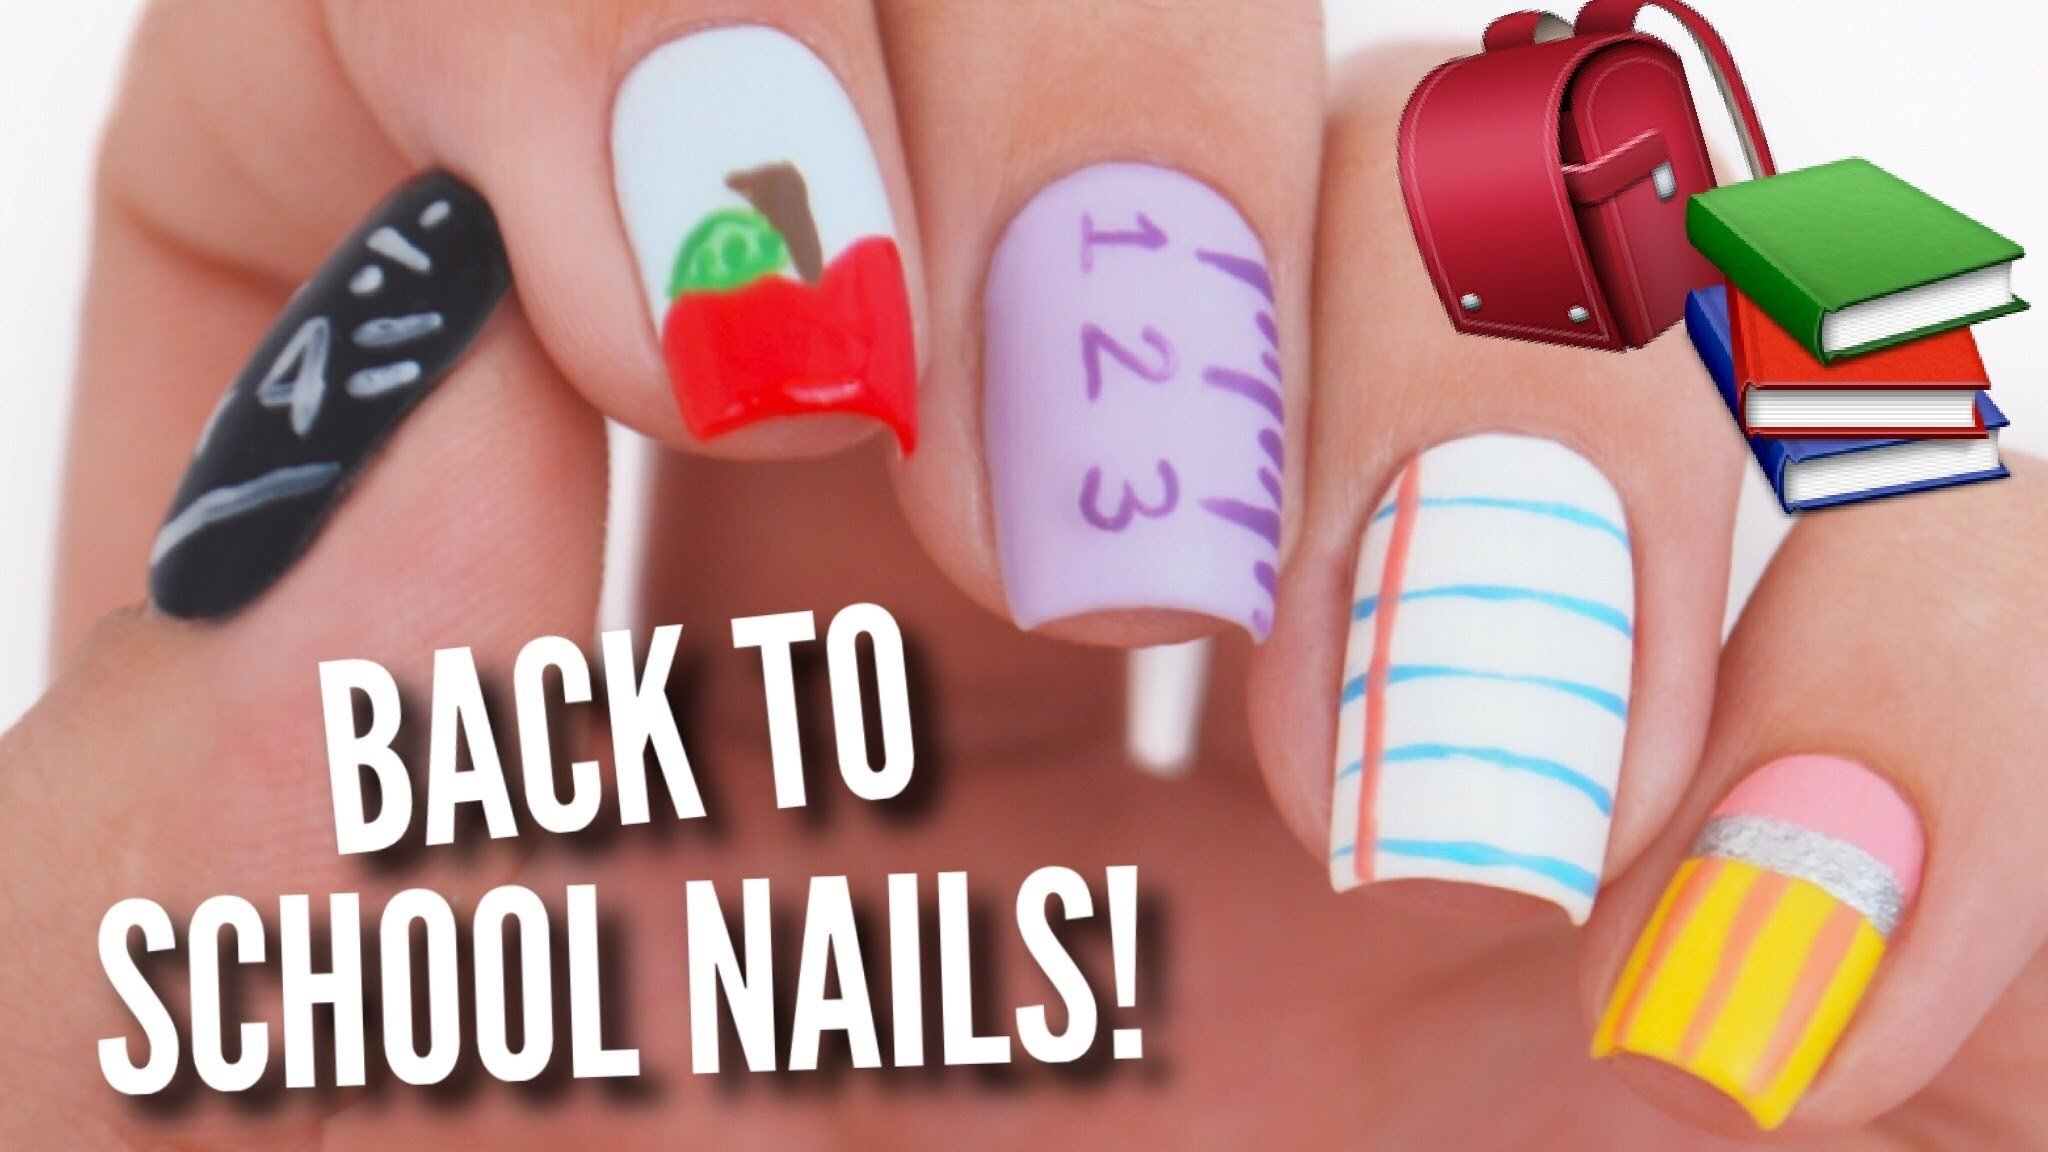 10 Fabulous Back To School Nail Ideas 5 back to school nail art designs youtube 2020